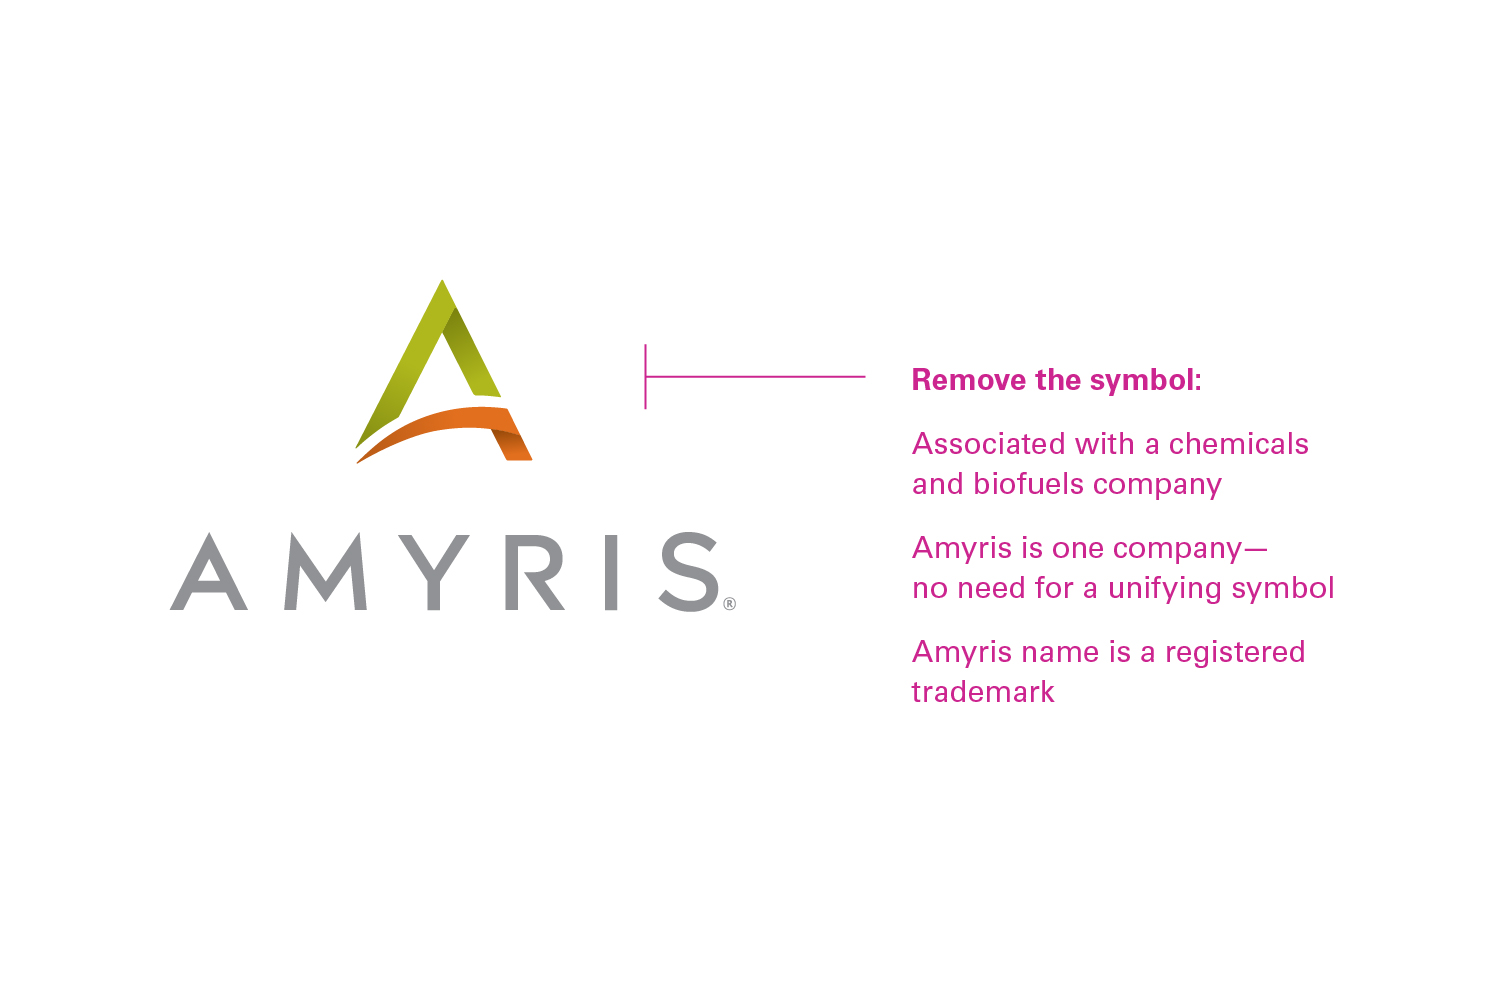 Amyris logo, strategic rationale for brand refresh